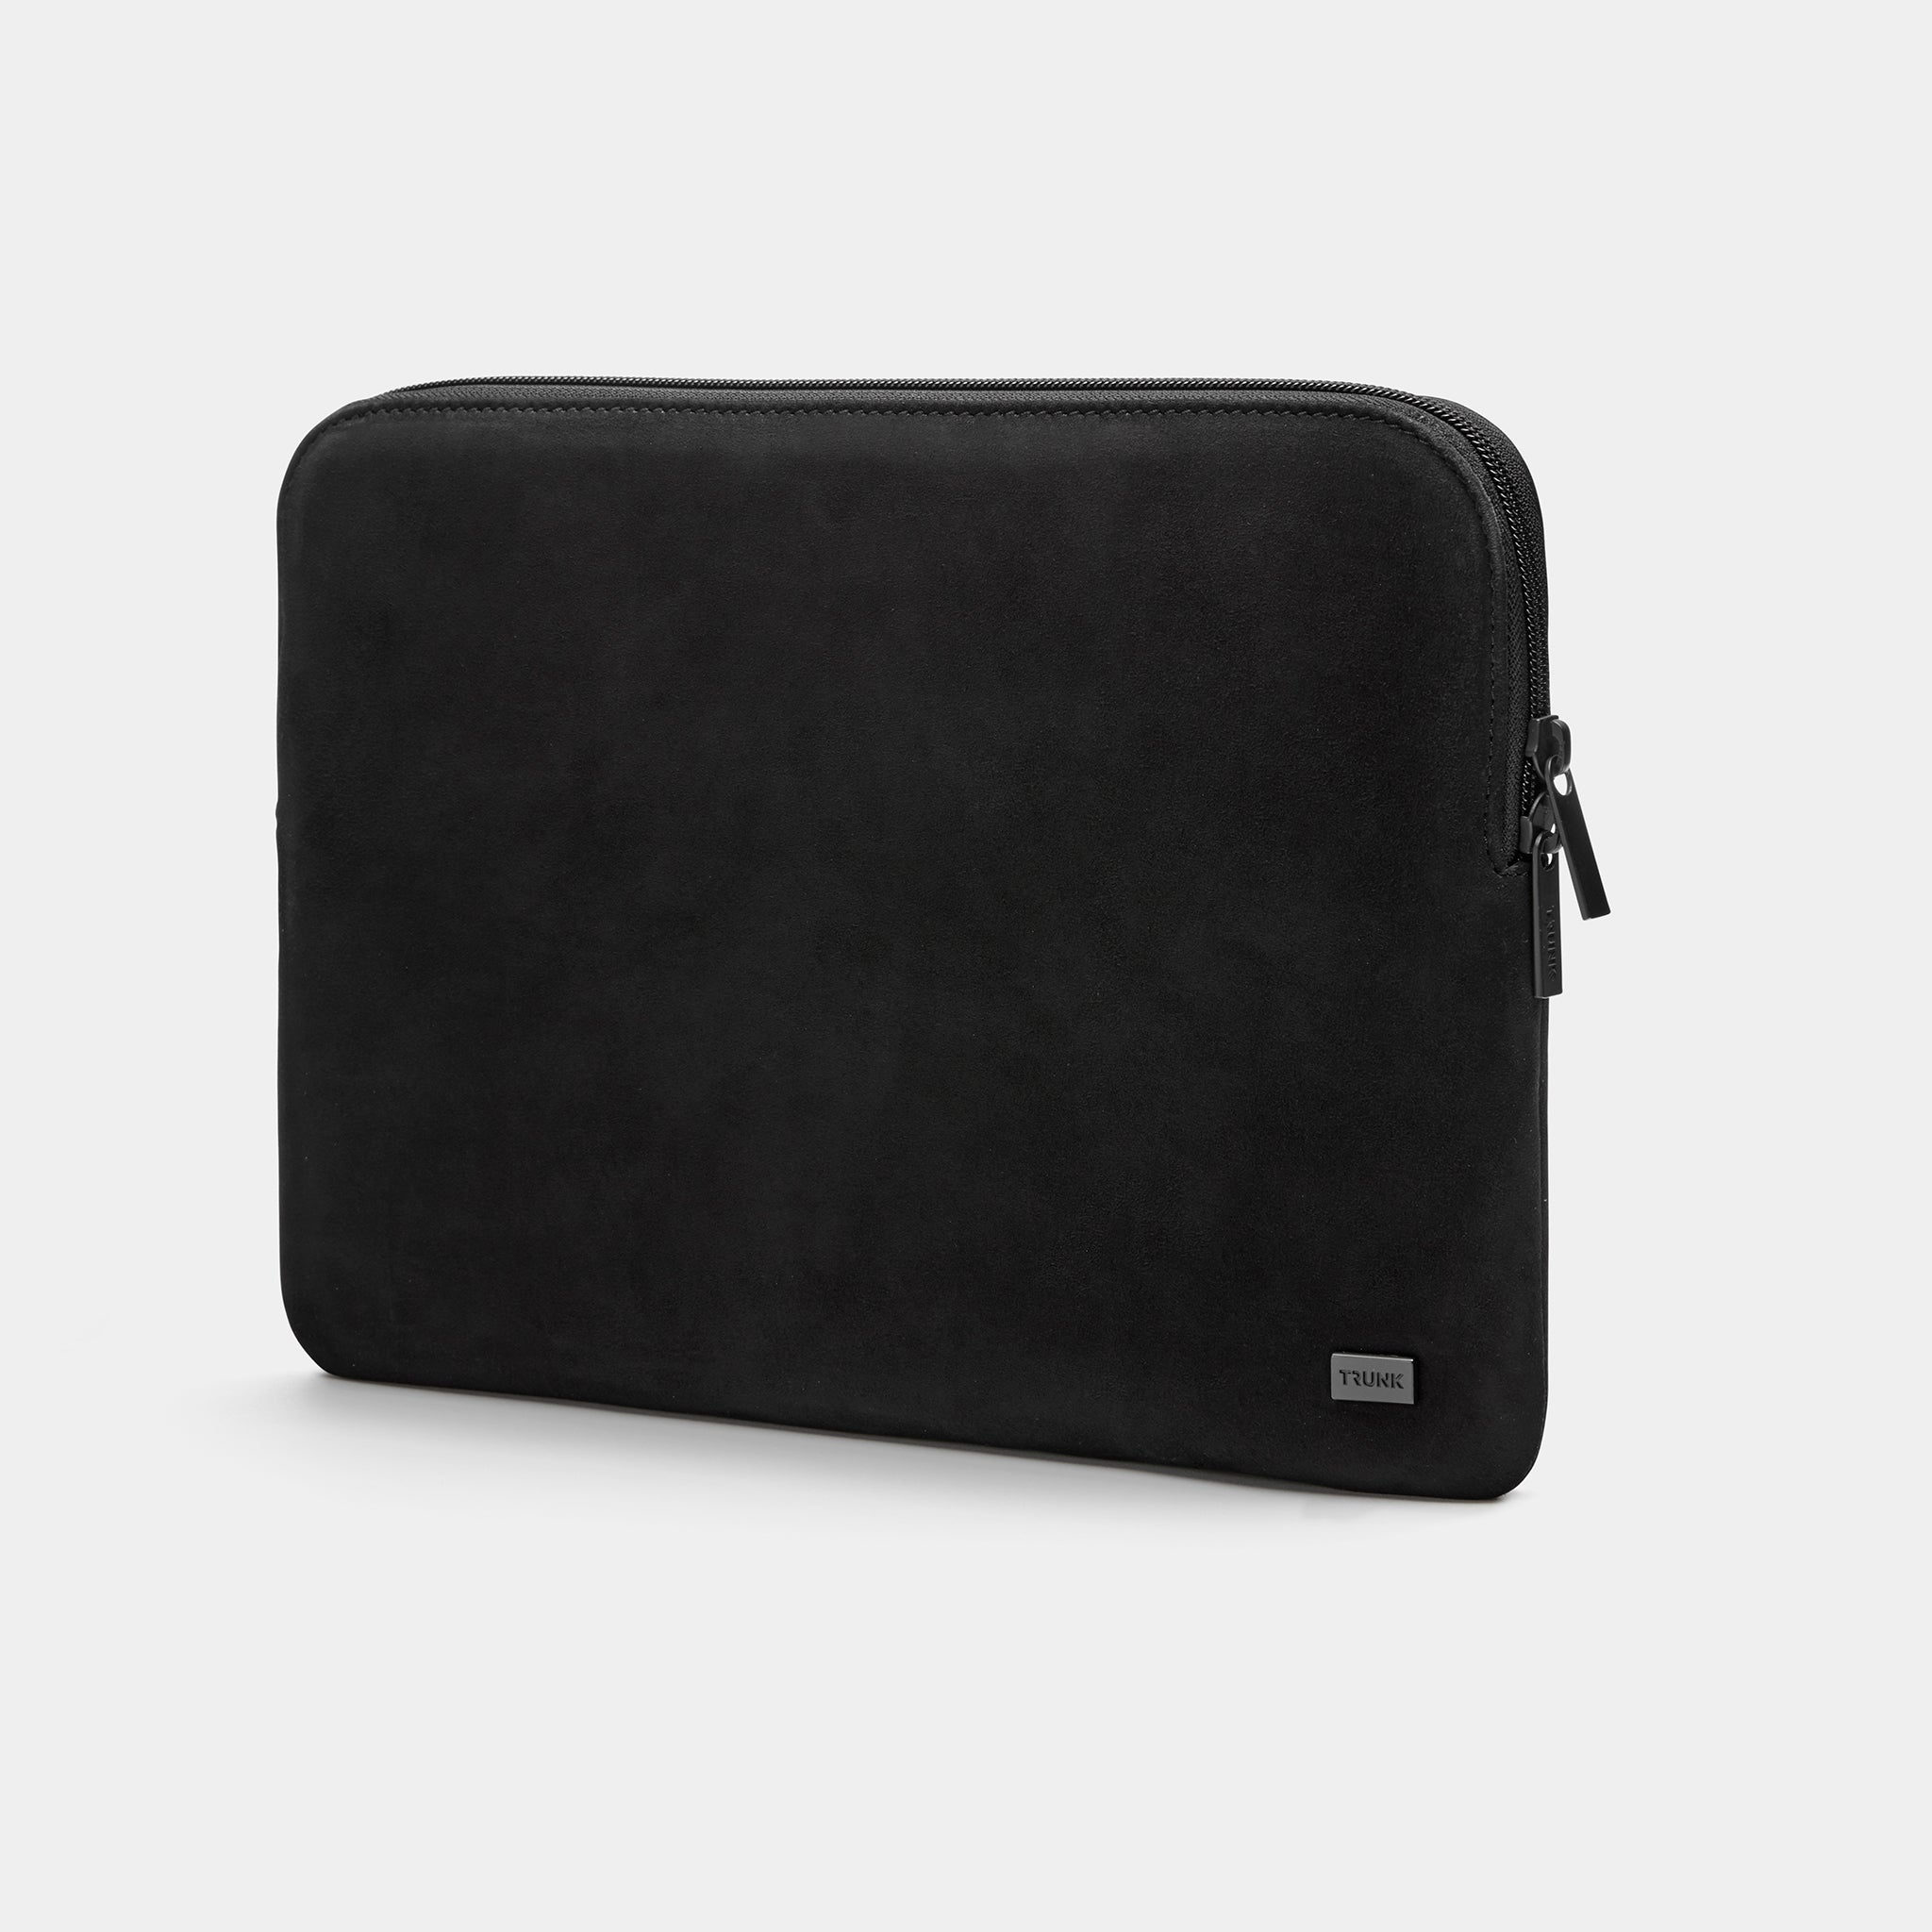 Suede Black - Neoprene Sleeve